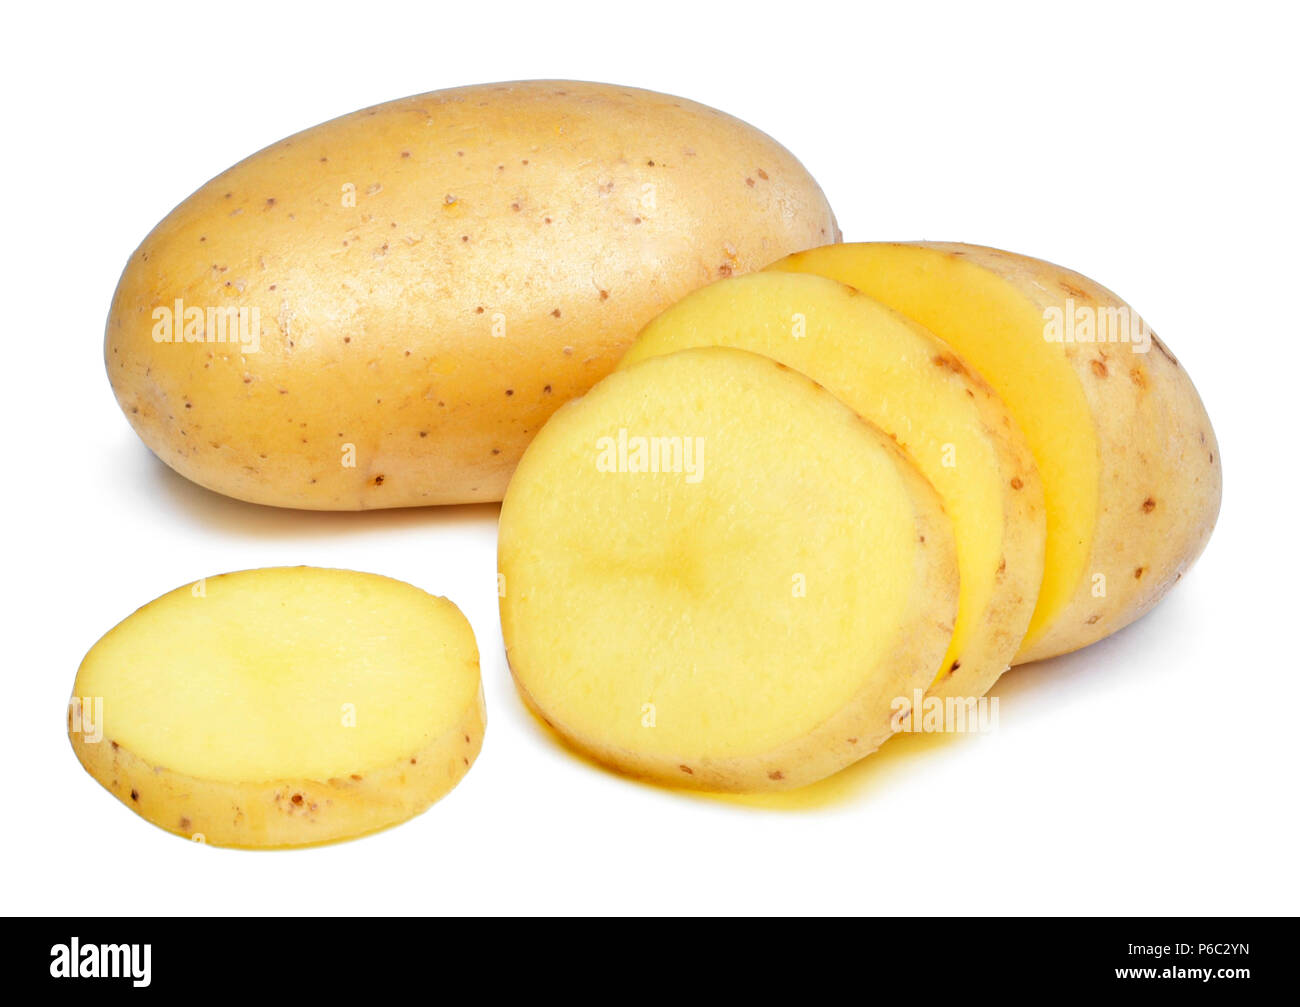 Potato isolated on white background. Fresh, raw potatoes, studio shot. Cooking ingredient. - Stock Image